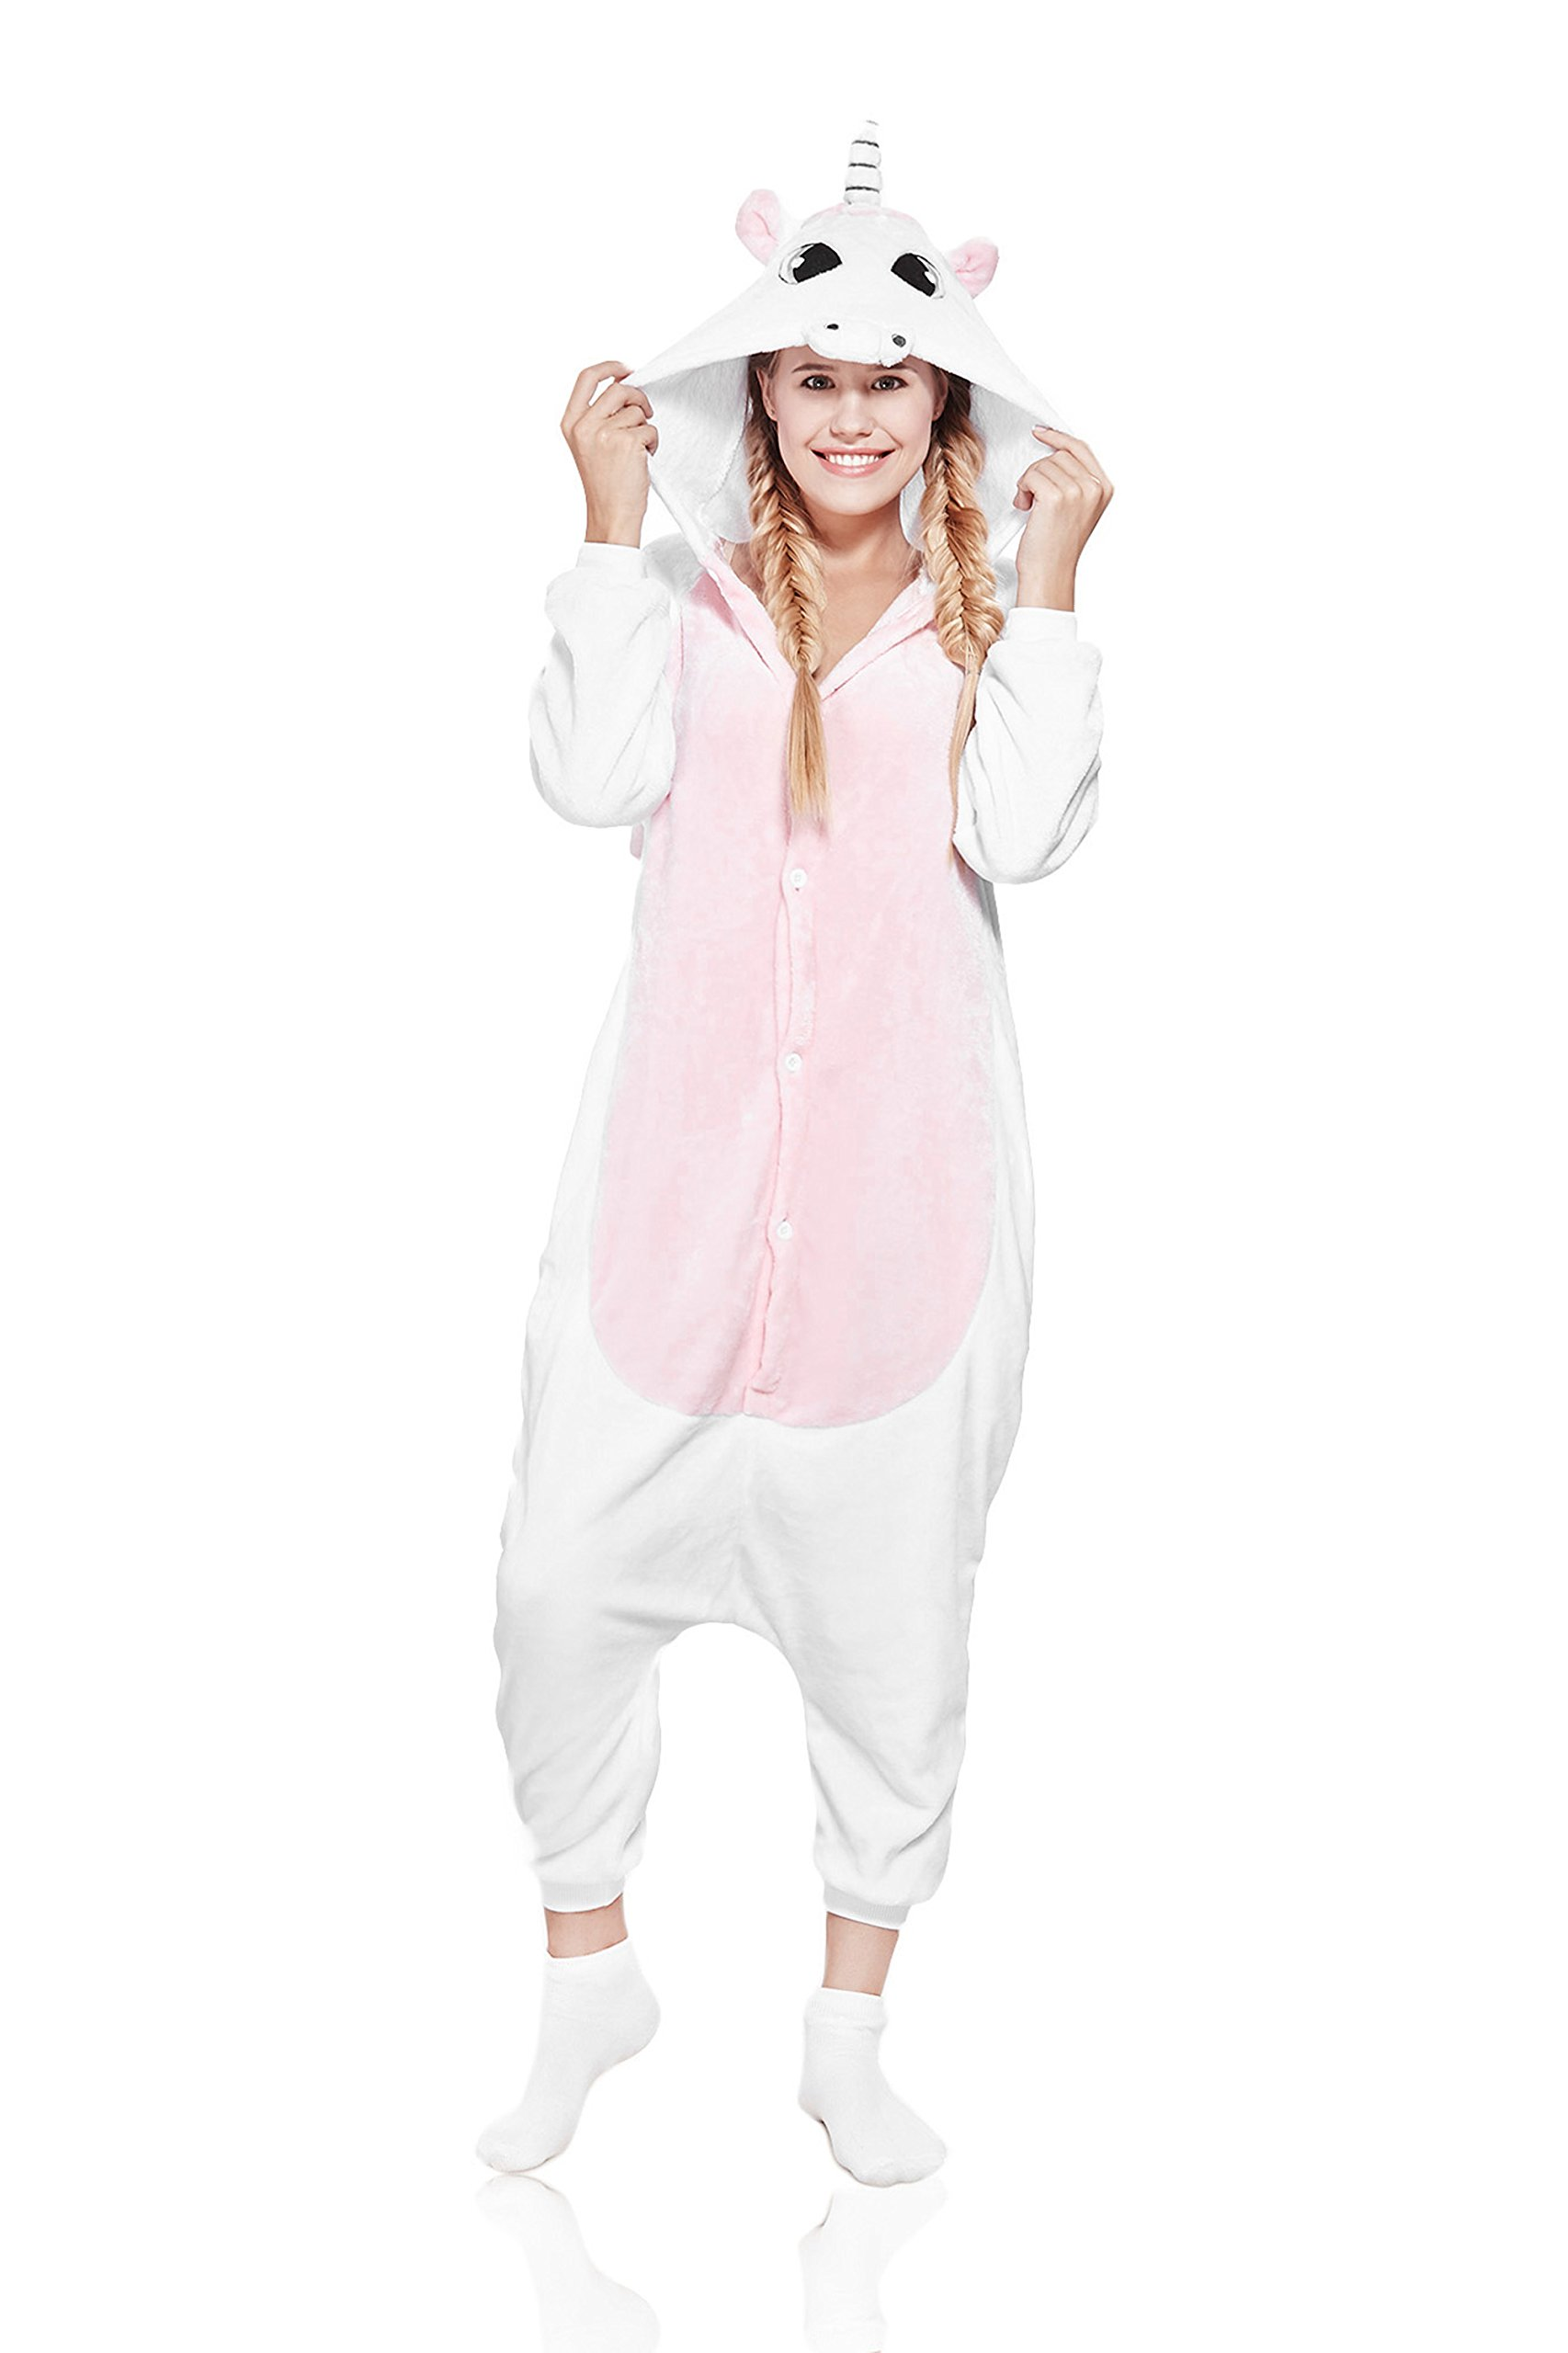 Nothing But Love Adult Pink Unicorn Onesie Pajamas Kigurumi Animal Cosplay Costume Onsie Fleece Pjs (Small, White, Pink)